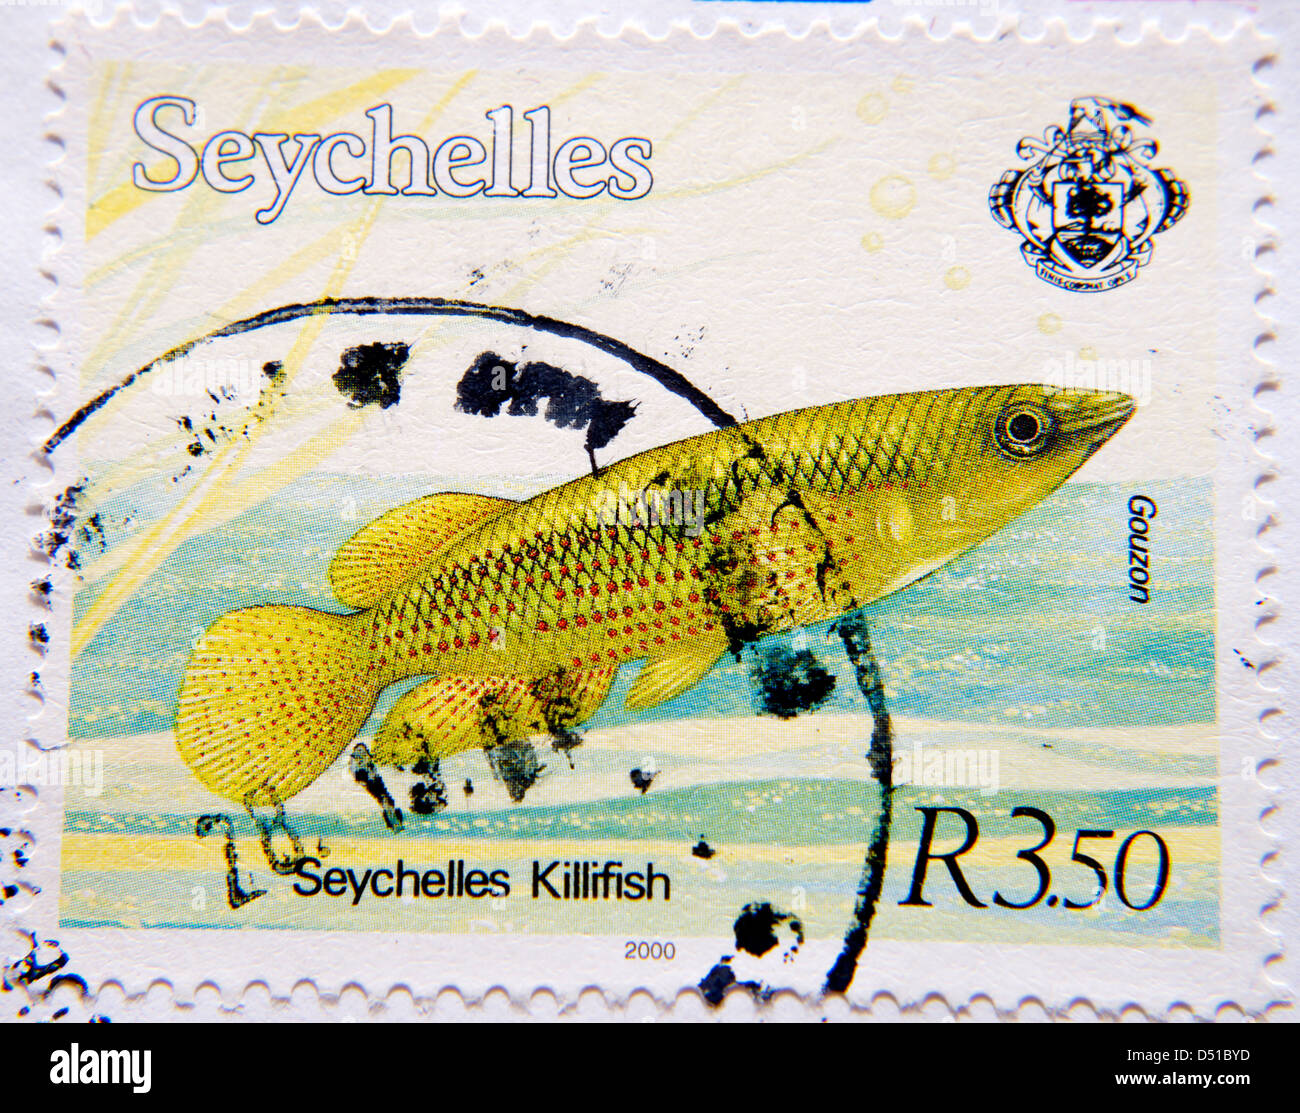 Seychelles Postage stamp with Seychelles Killifish - Stock Image